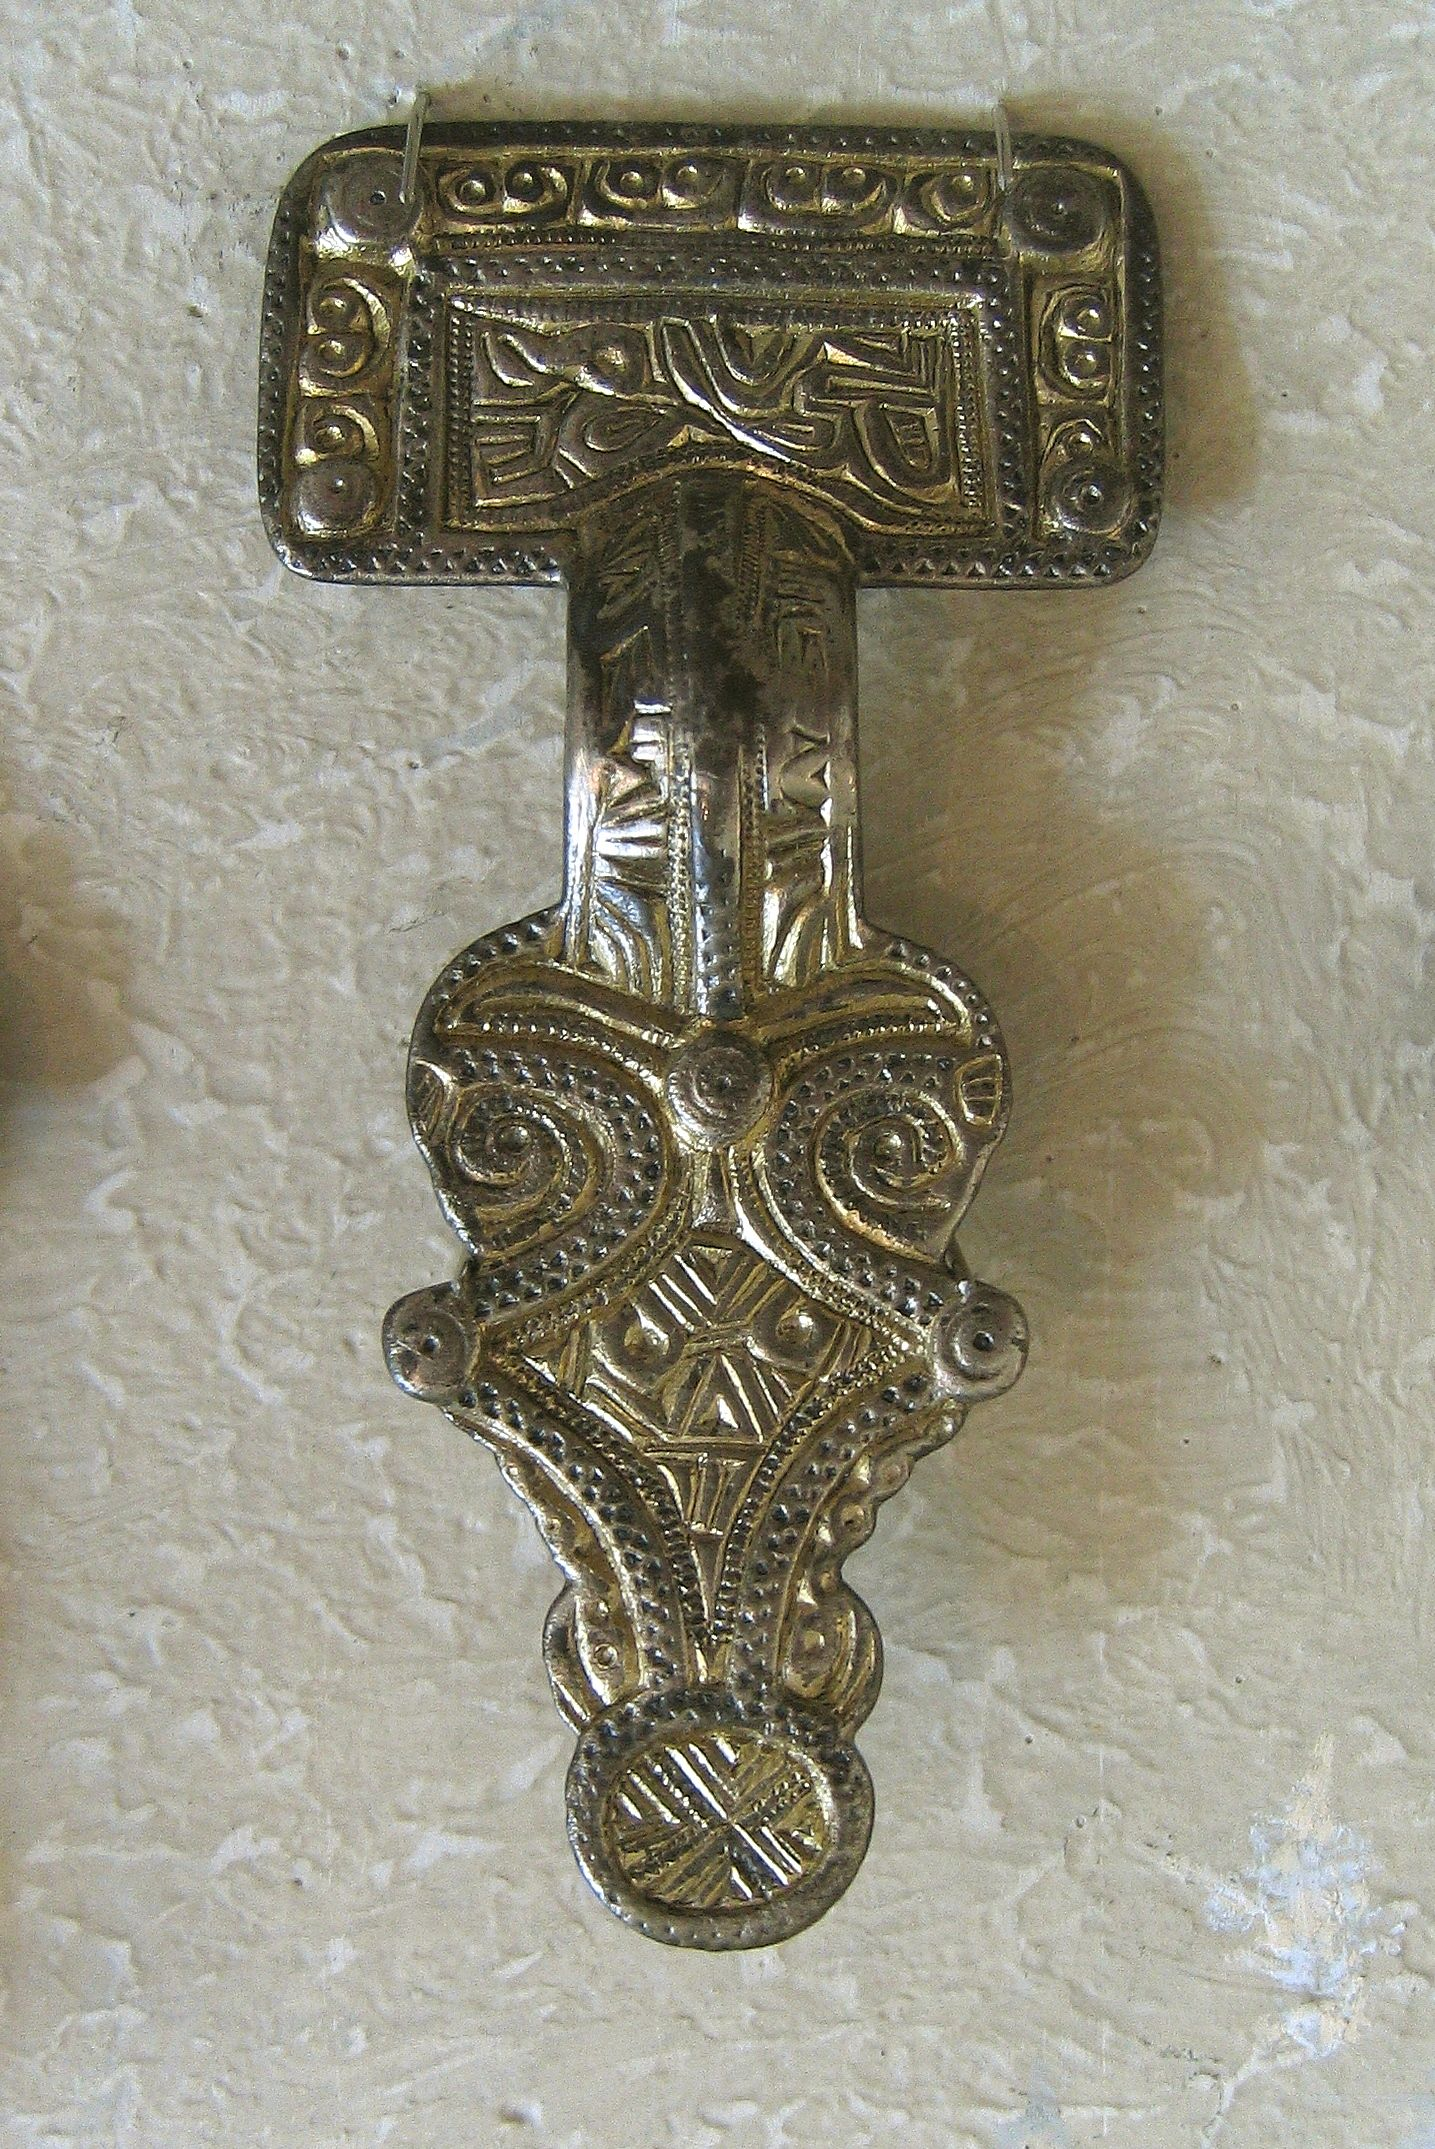 The so-called large Rune Fibula of Nordendorf I. Found in 1843 in an Alemannic grave field of the early 7th century A.D. near Nordendorf, Bavaria, Germany. The fibula bears a runic inscription on the back side of its head plate: (first line) logaþore wodan wigiþonar (second line) awa (l)eubwini. Photographed at the Römisches Museum, Augsburg, Germany.